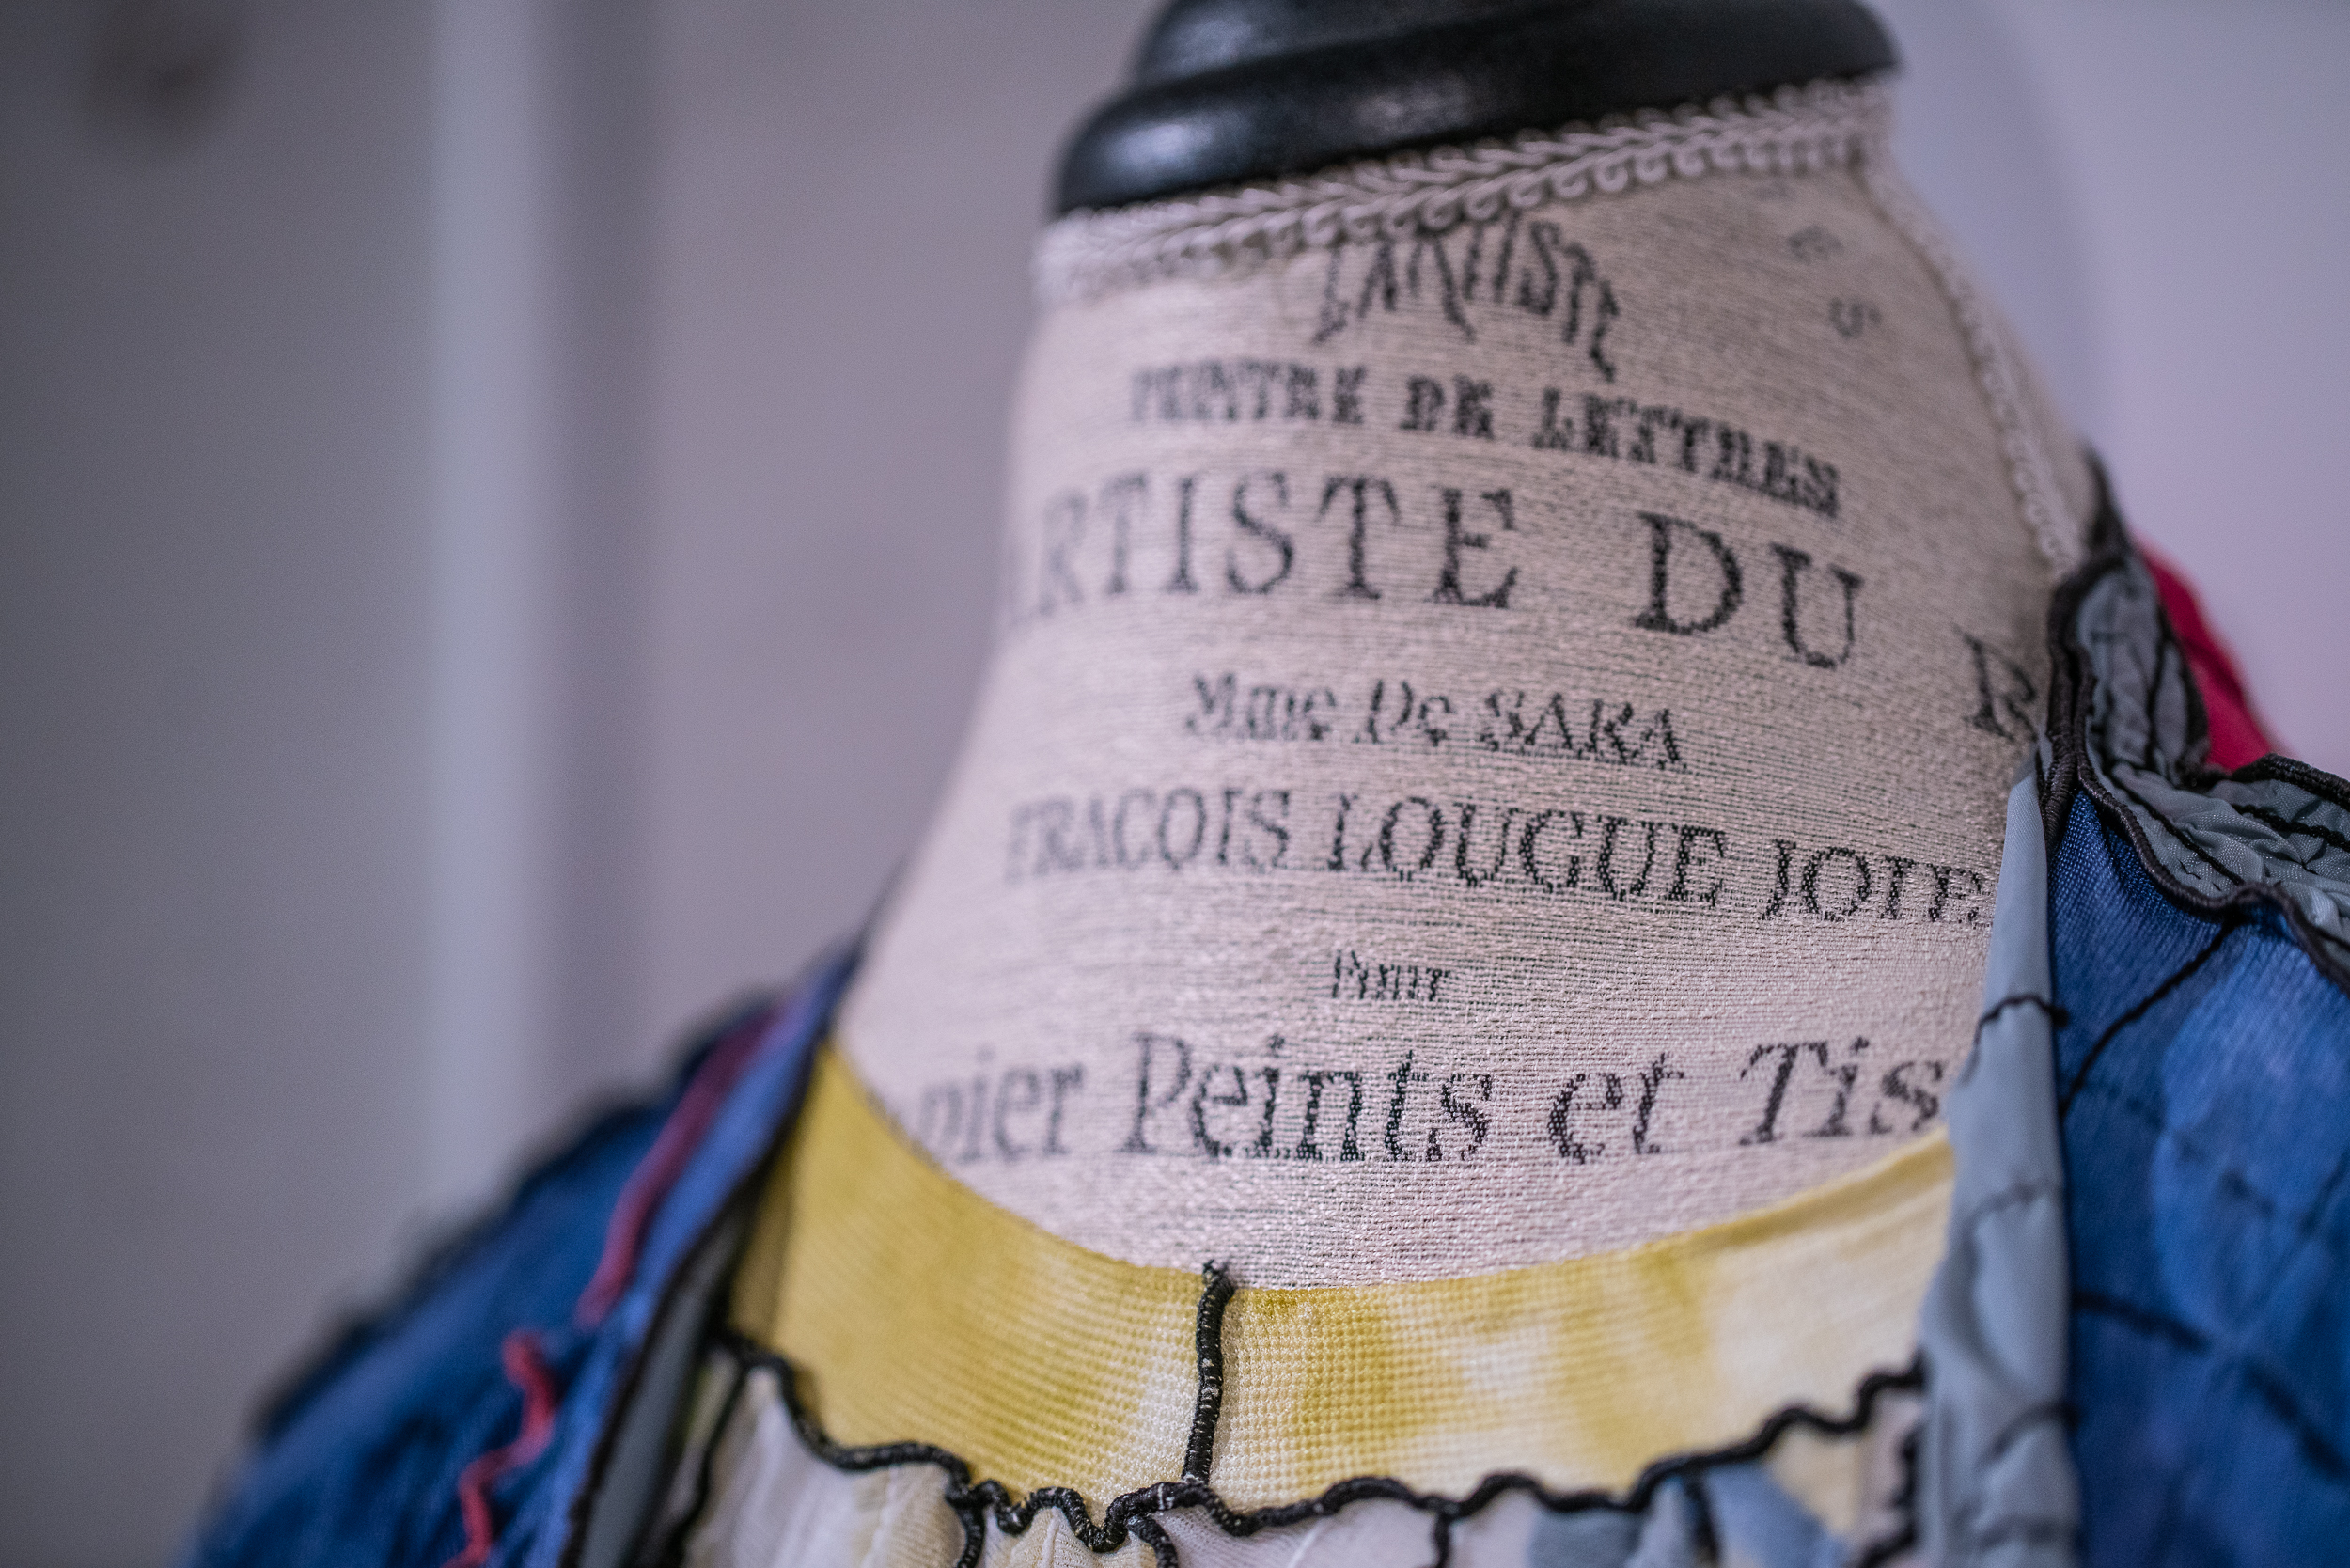 MaterialRevolution_KrisKish-5.jpg